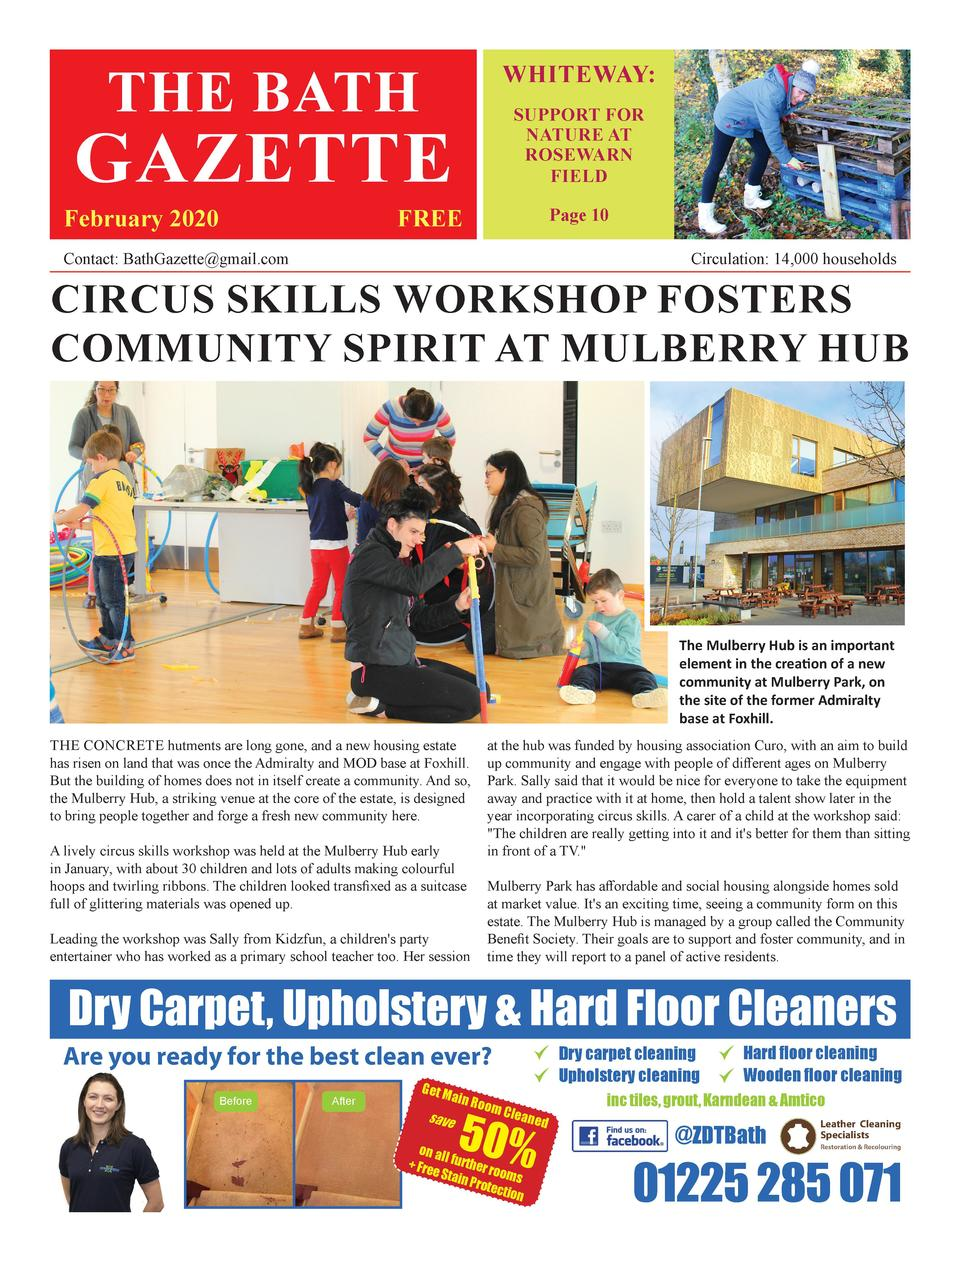 THE BATH  WHITEWAY  SUPPORT FOR NATURE AT ROSEWARN FIELD  GAZETTE  February 2020  FREE  Page 10  Contact  BathGazette gmai...